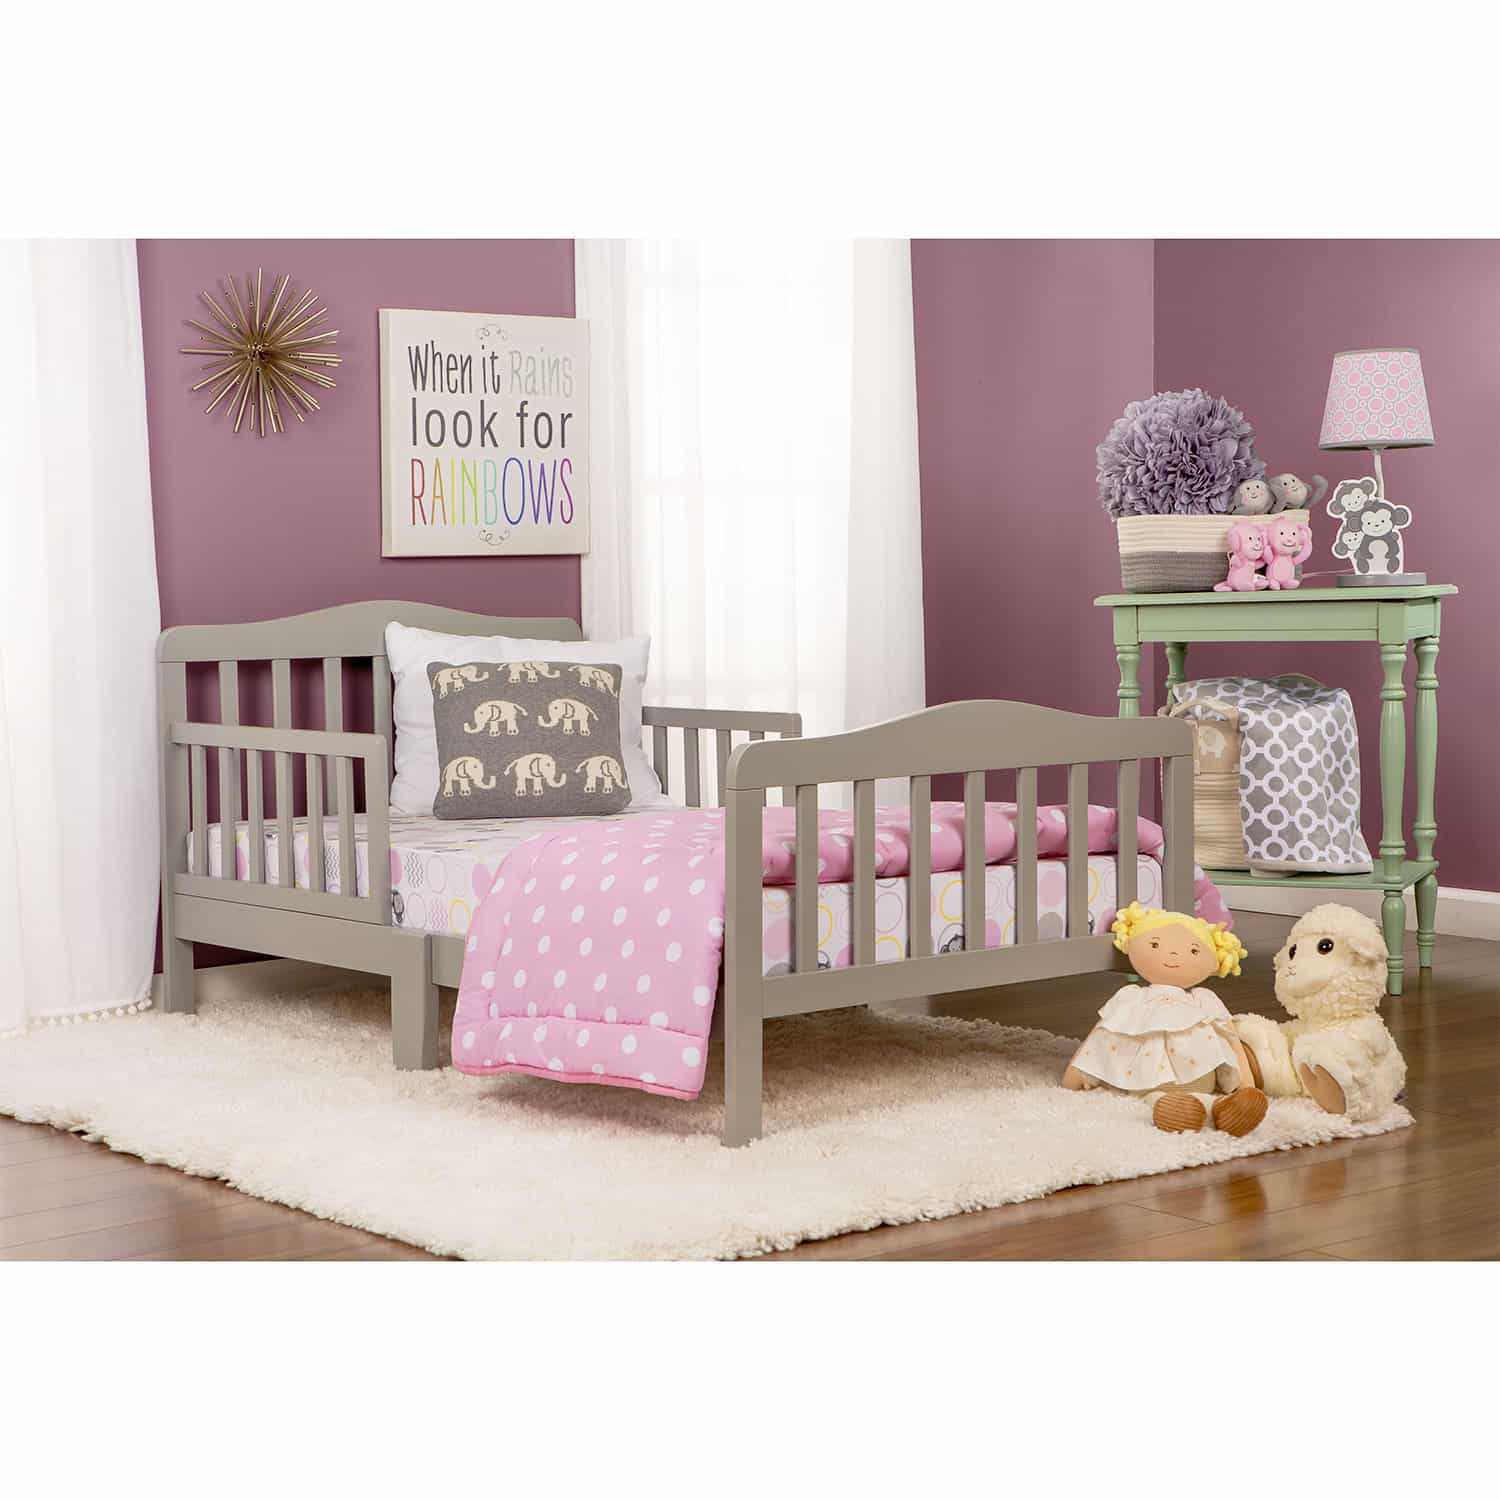 624_CG_Classic_Design_Toddler_Bed_RS